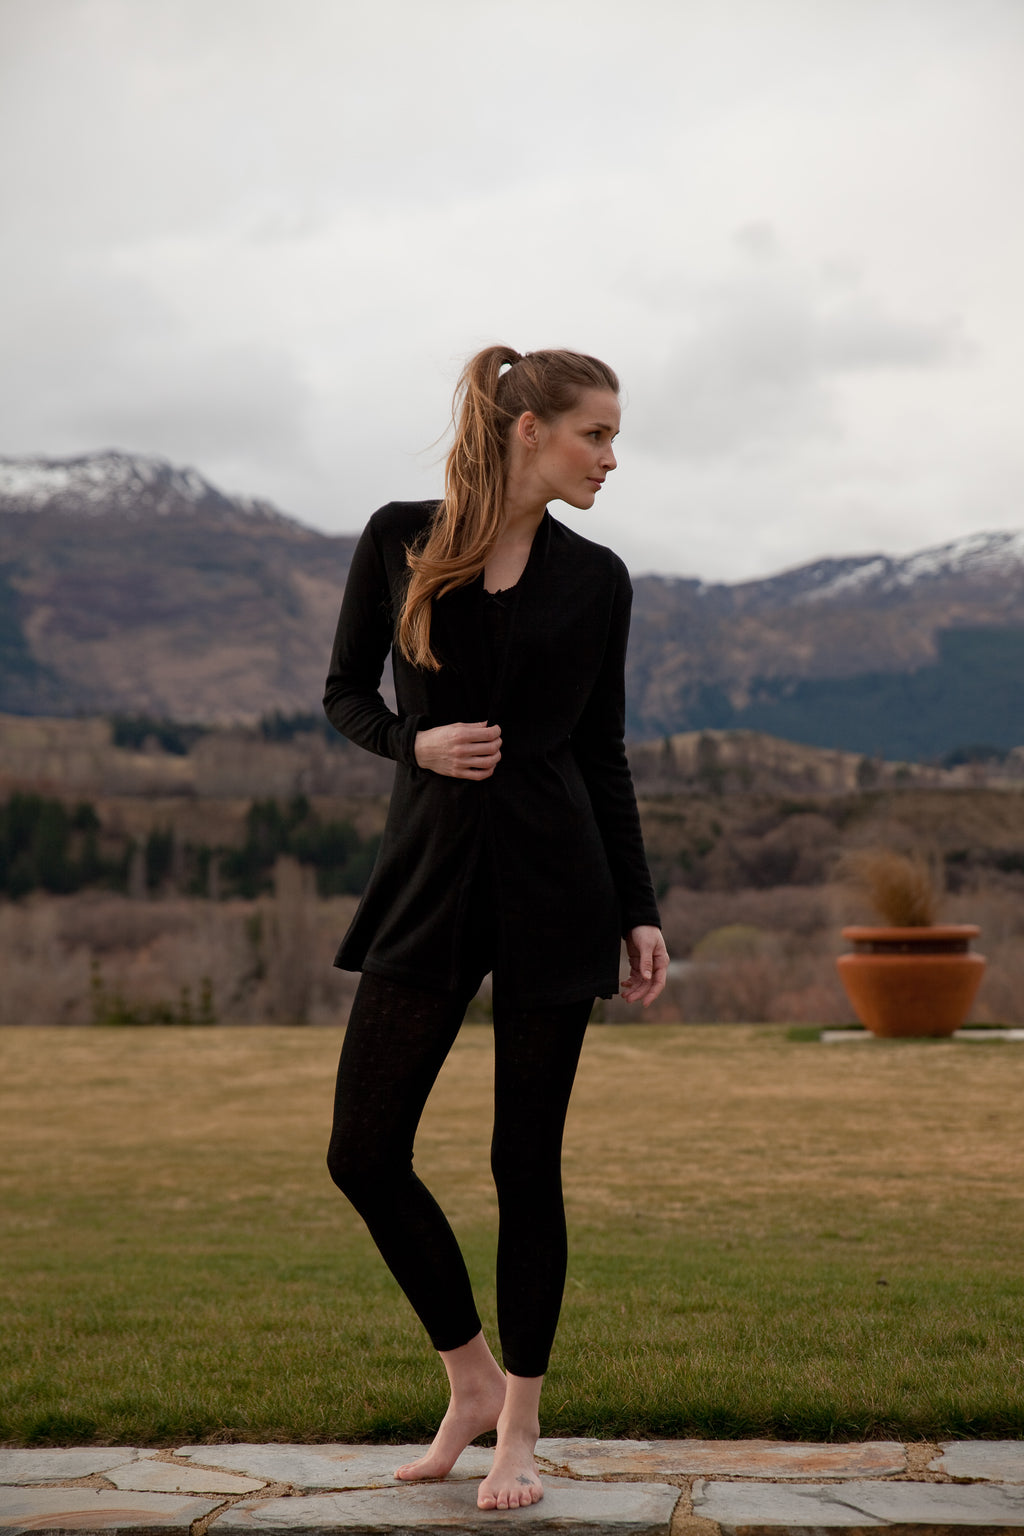 Kapeka Women's Merino Base Layers and Thermals